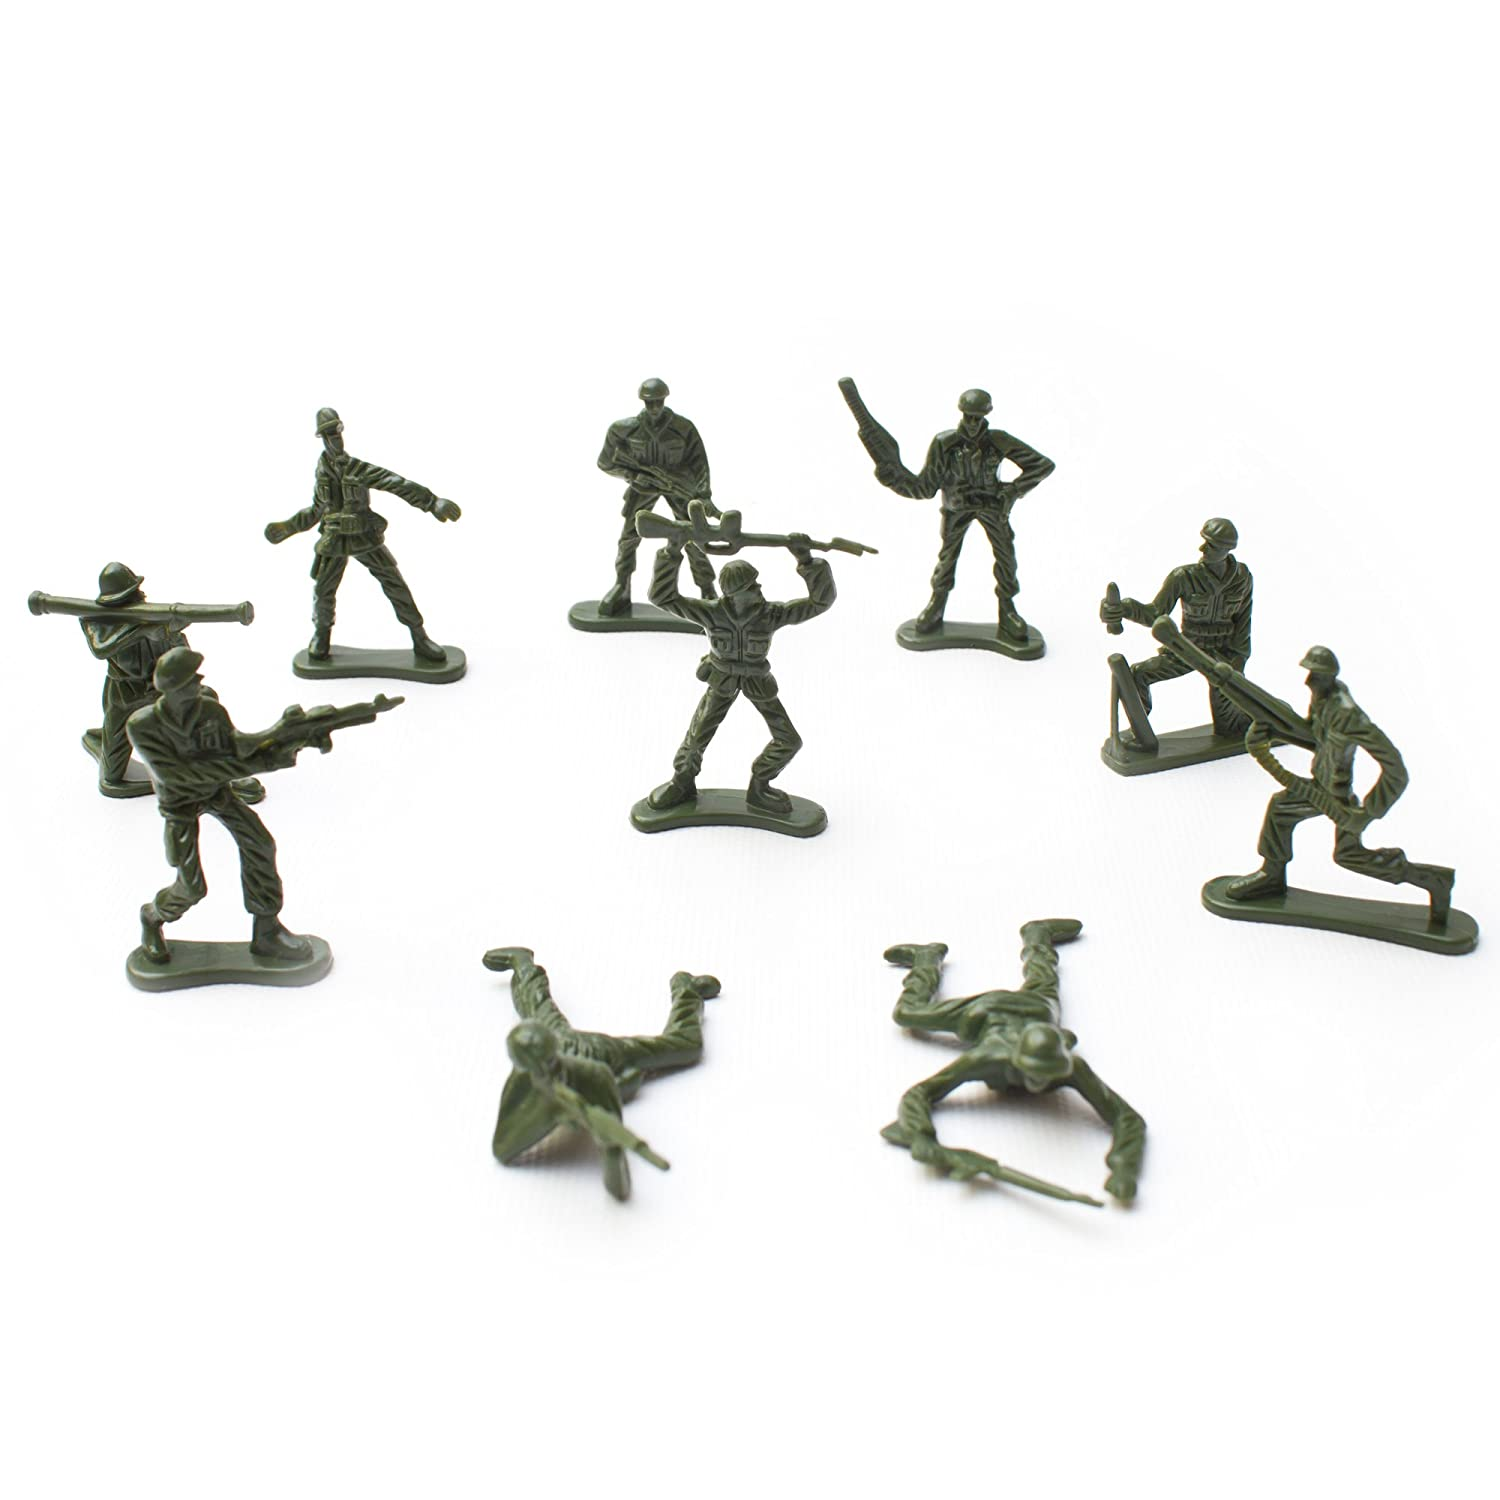 Fun Central AU196, 144 Pcs Various Pose Toy Soldiers Figures, Army Men Green Toy Soldiers, Toy Soldiers Action Figures For Kids NOV-FIGARY-G